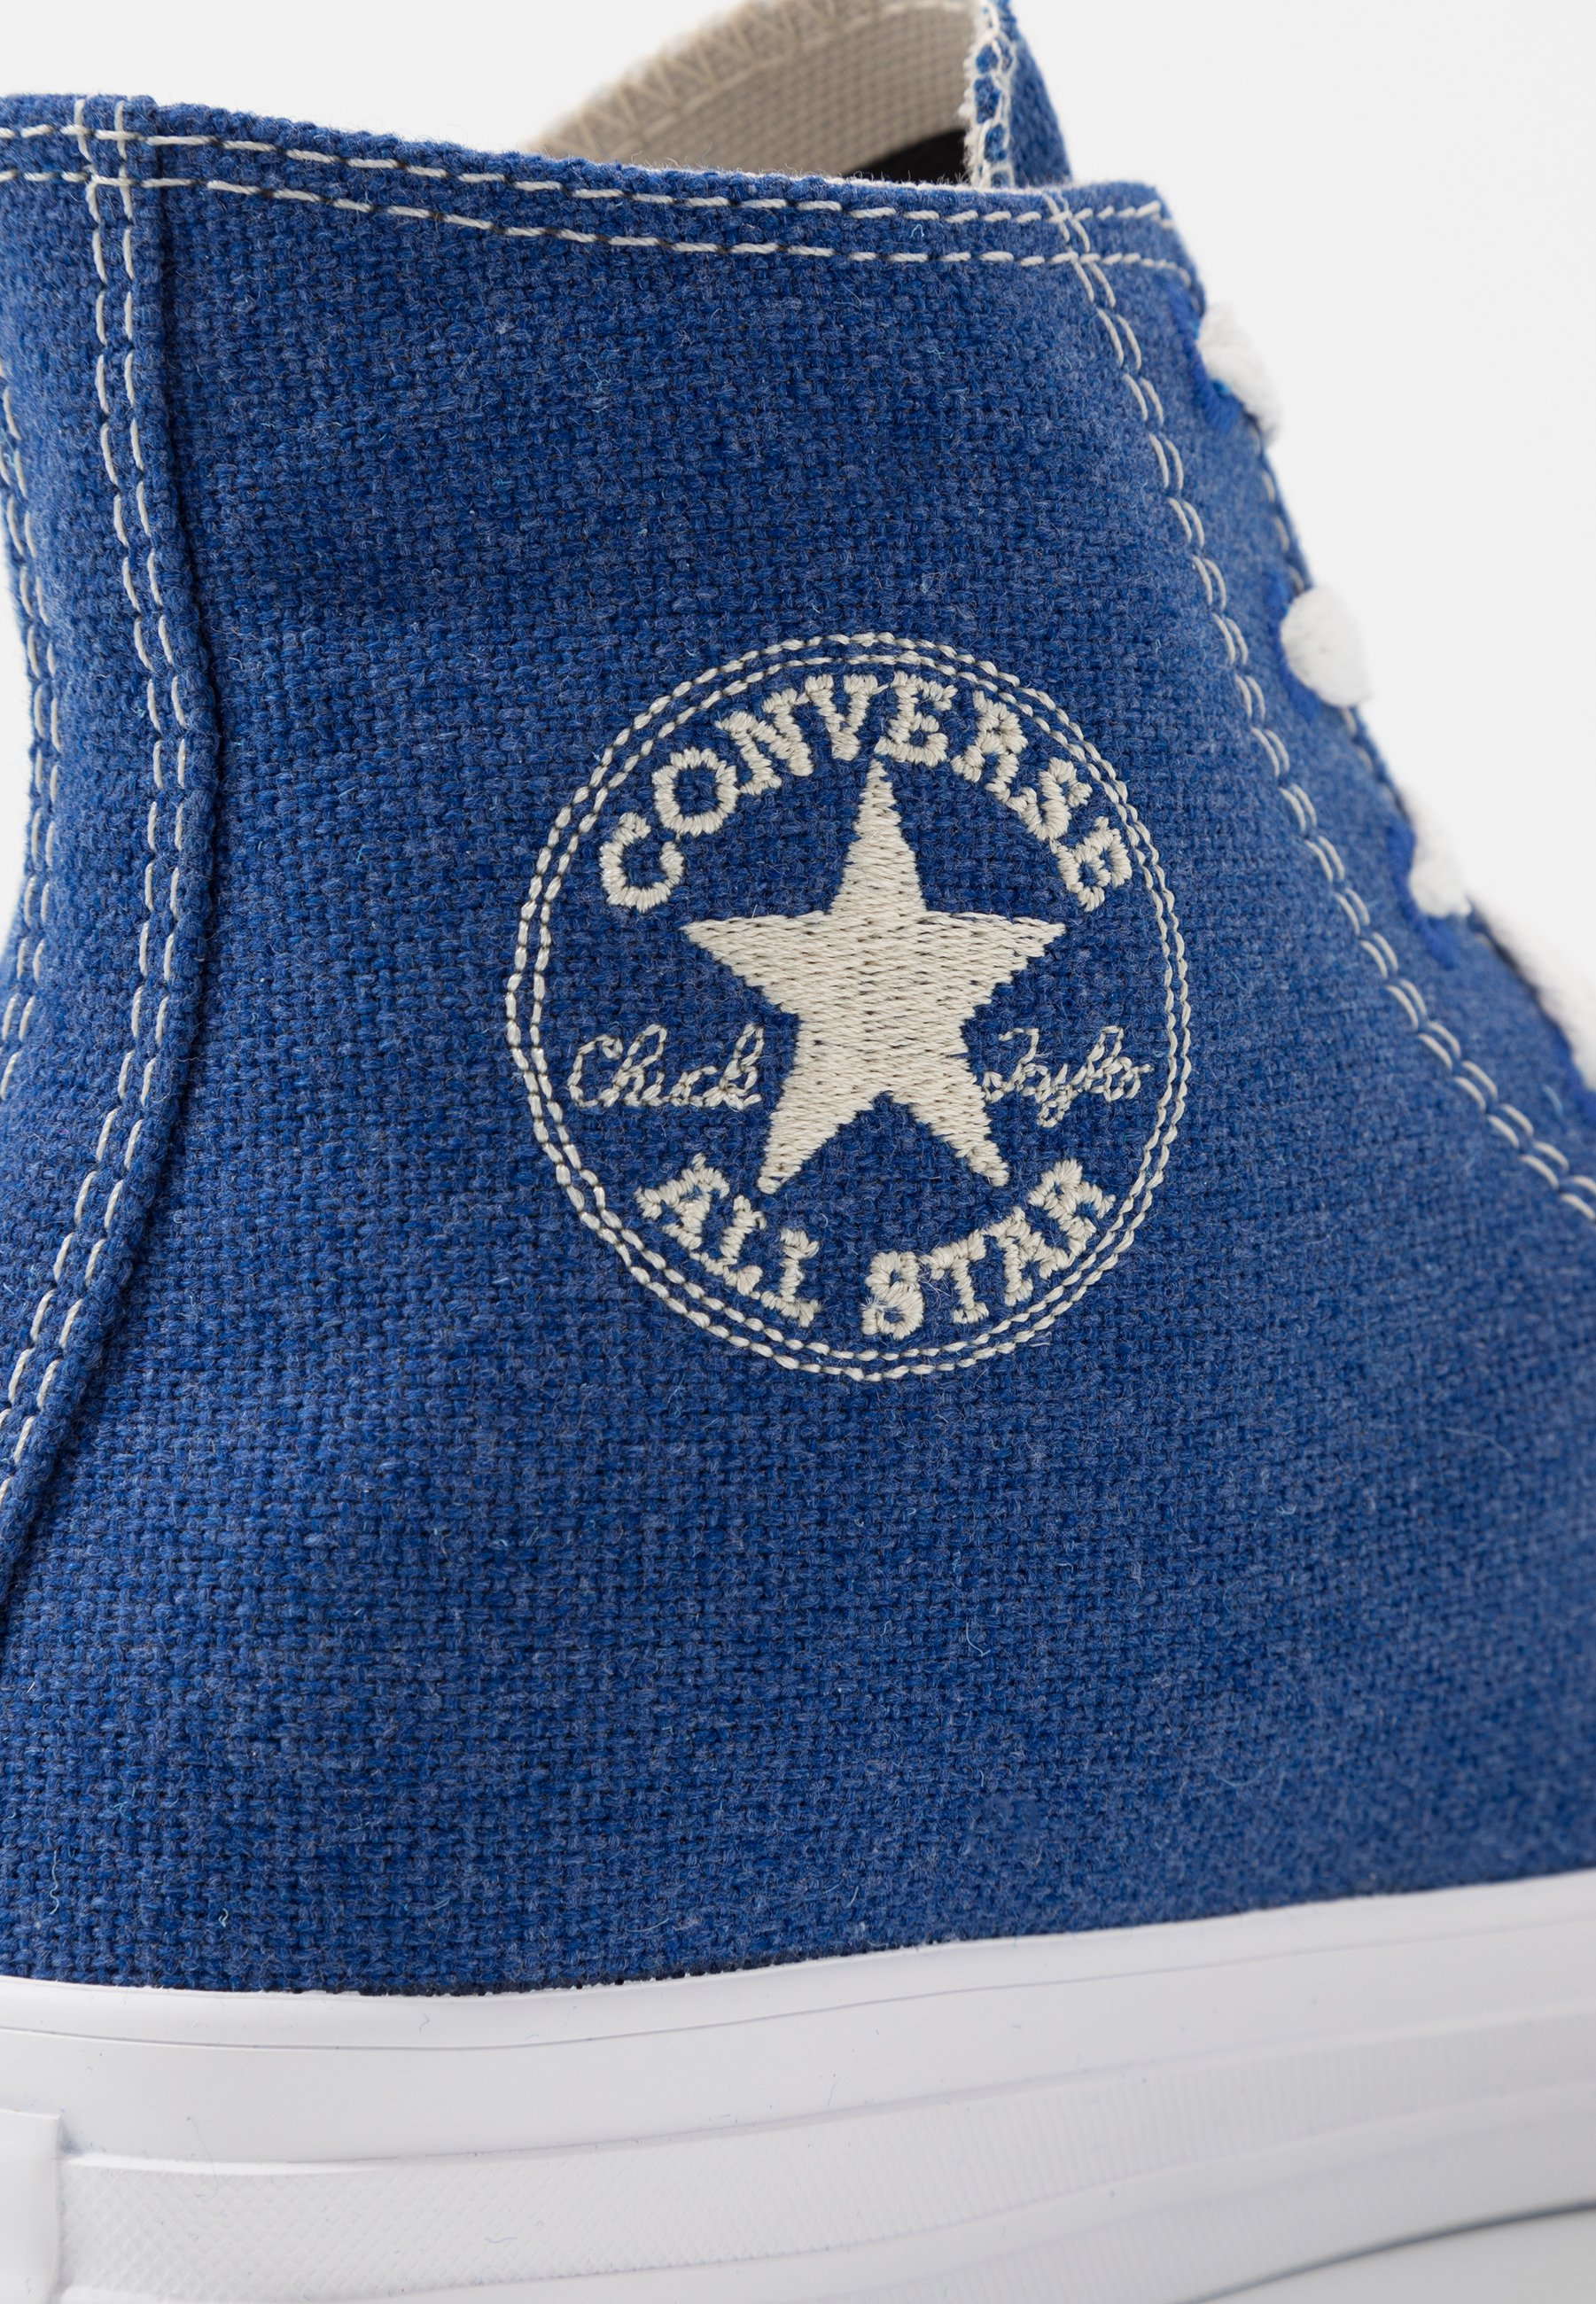 Converse Chuck Taylor All Star Renew - Høye Joggesko Rush Blue/natural/white